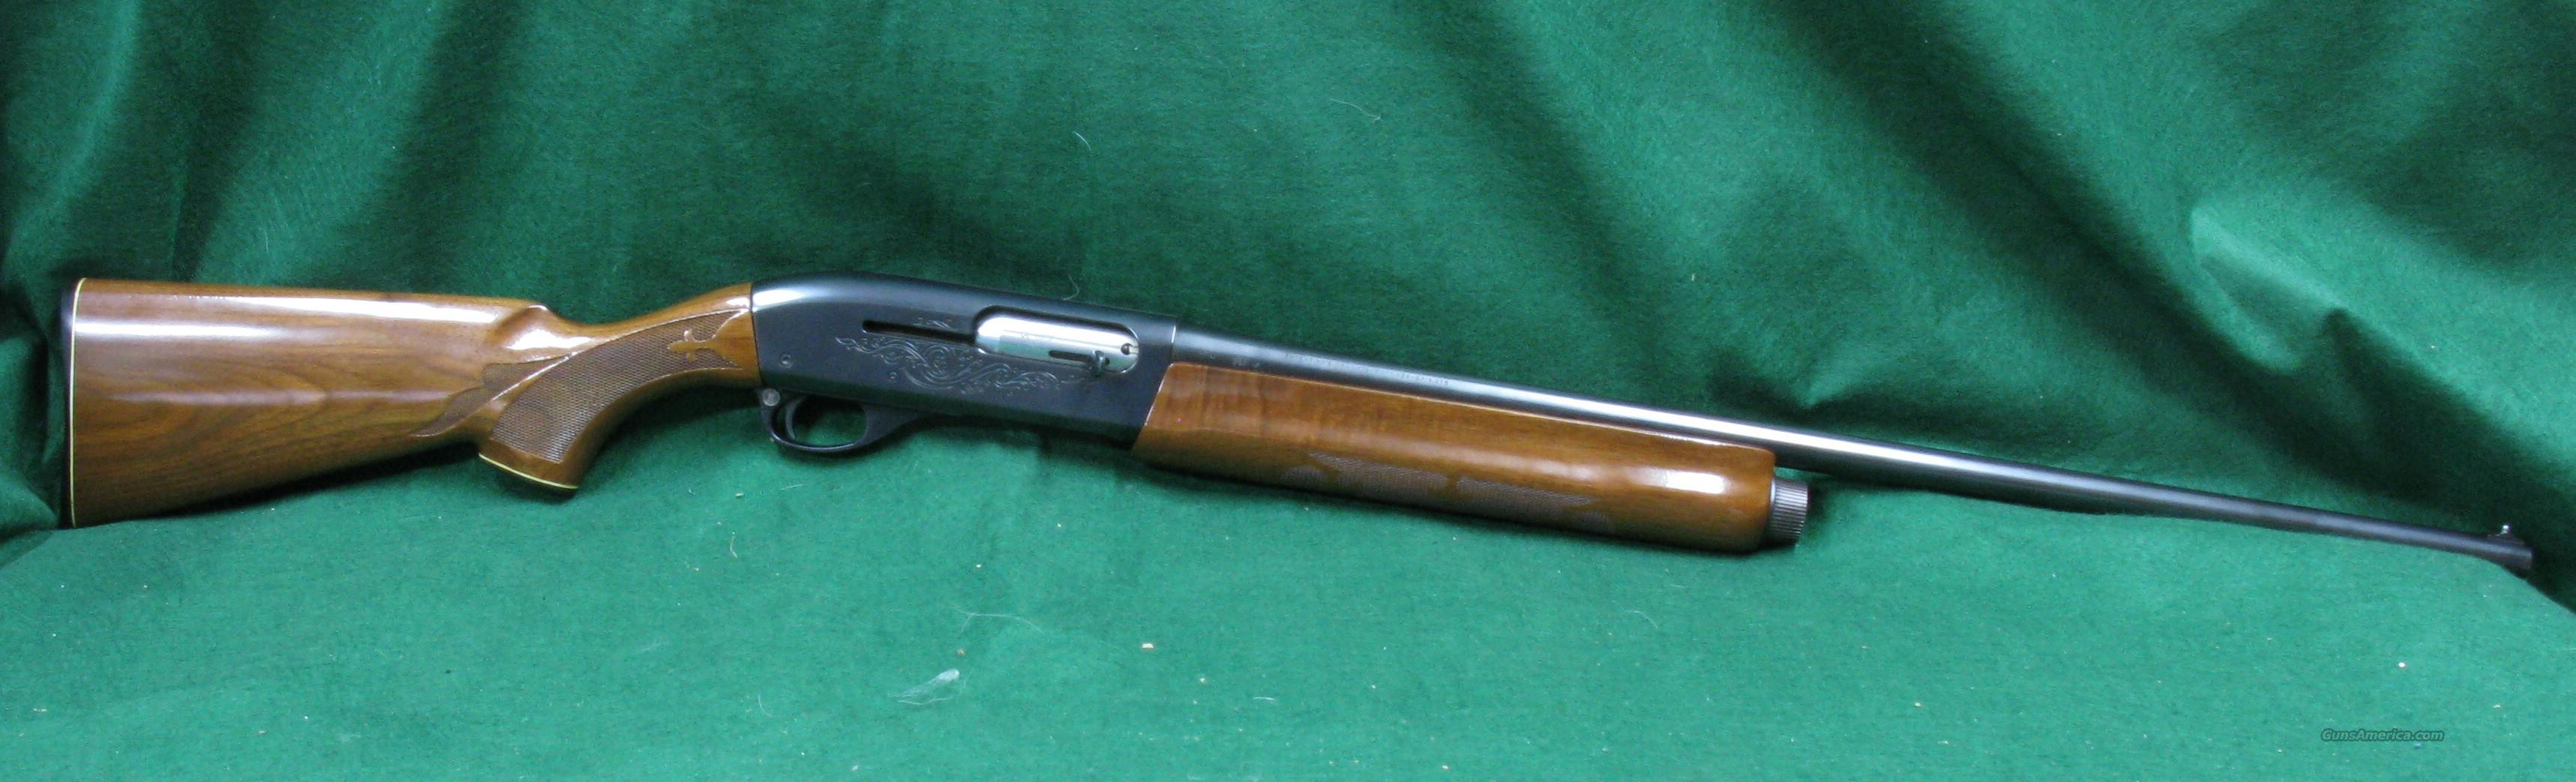 Remington 1100 16ga.  Guns > Shotguns > Remington Shotguns  > Autoloaders > Hunting